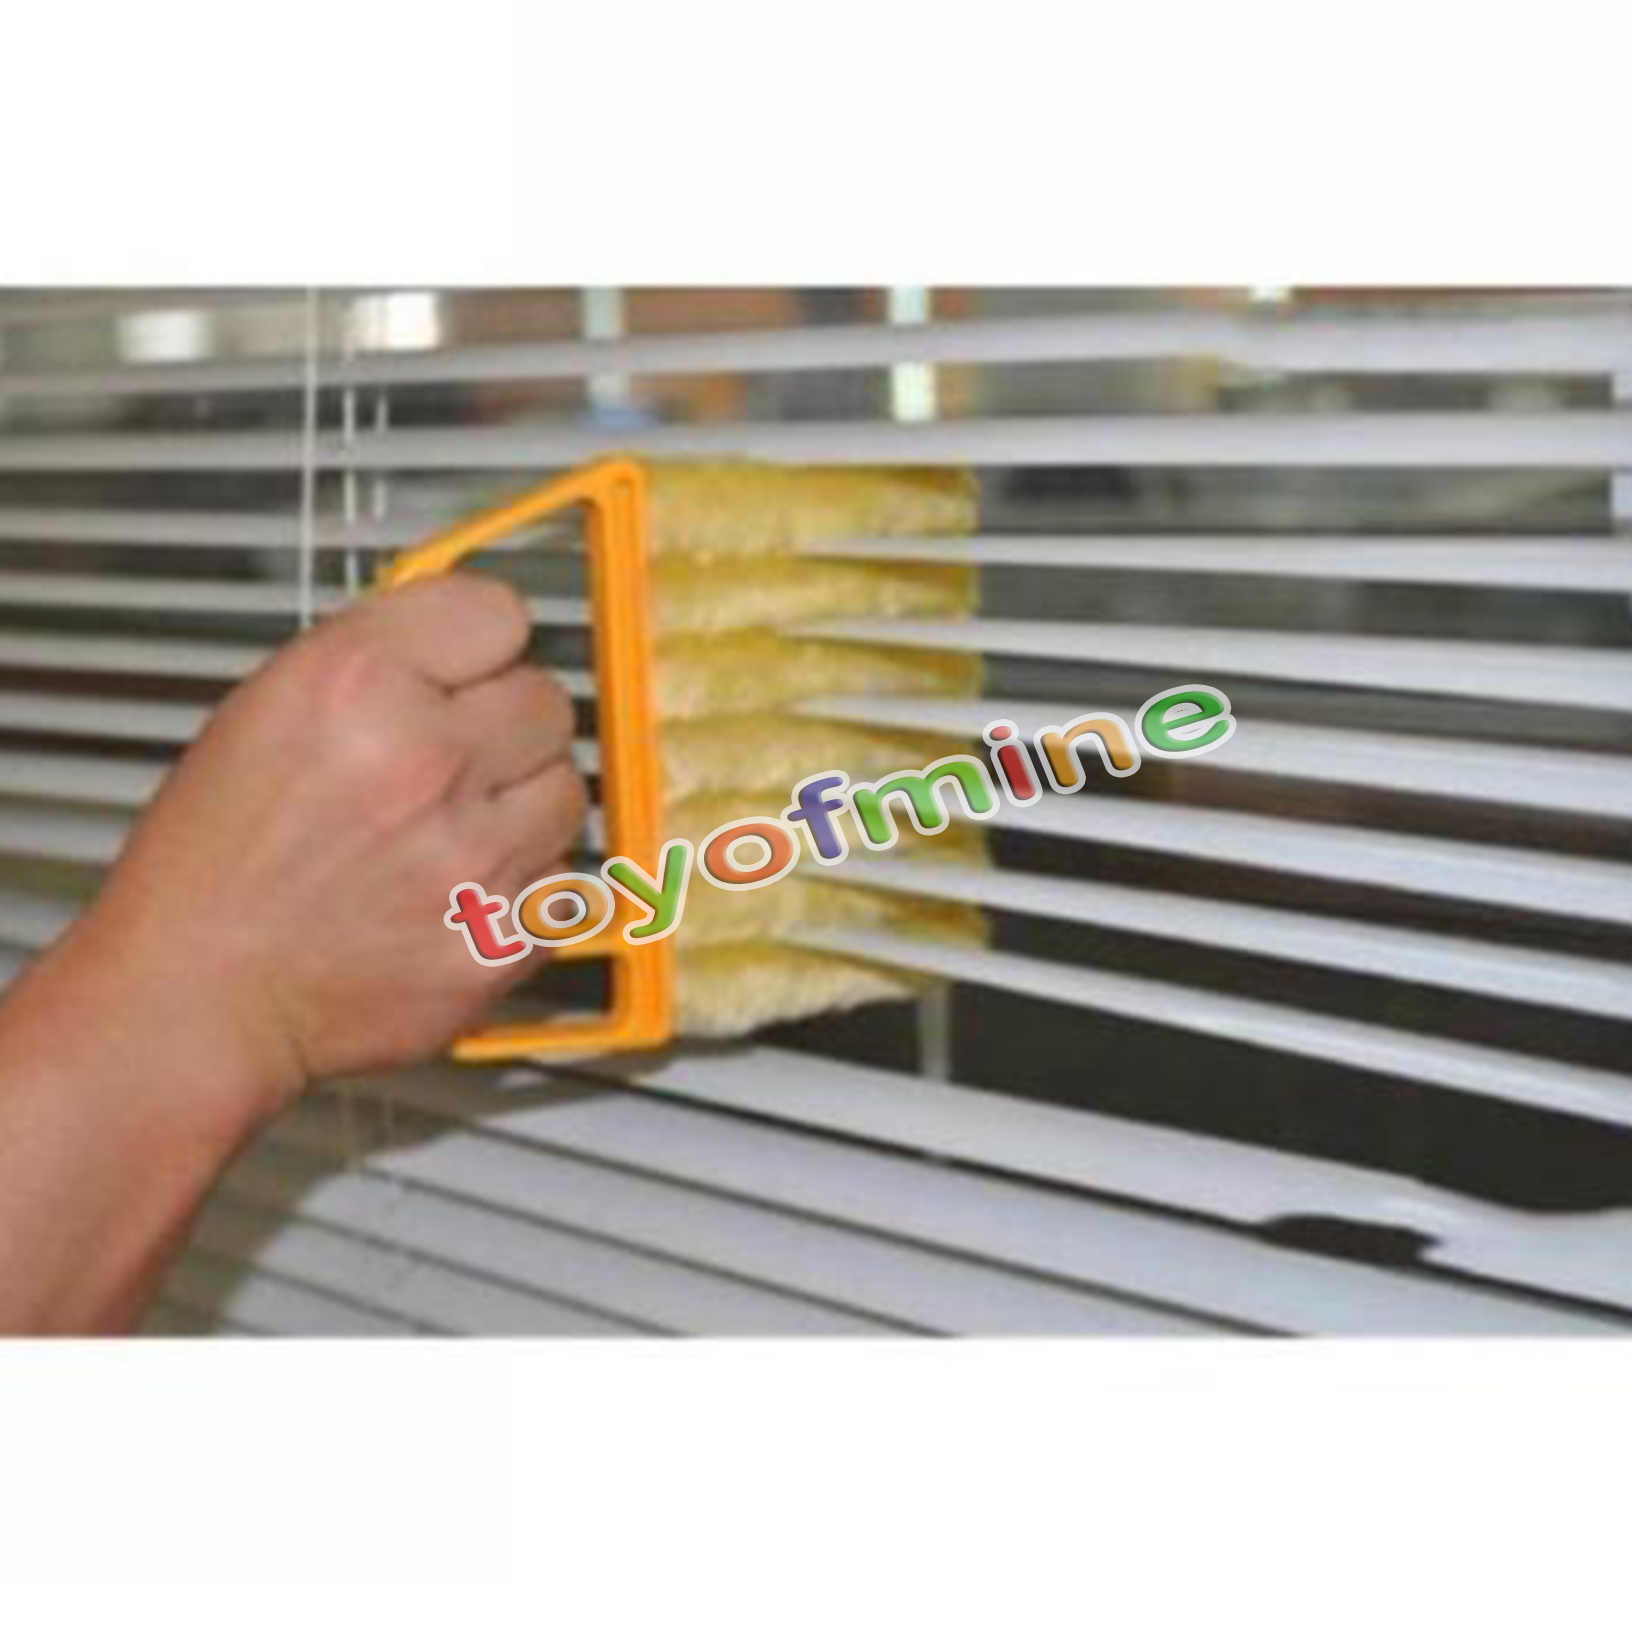 Venetian Blind Brush Window Air Conditioner Duster Dirt Clean Cleaner #A47127